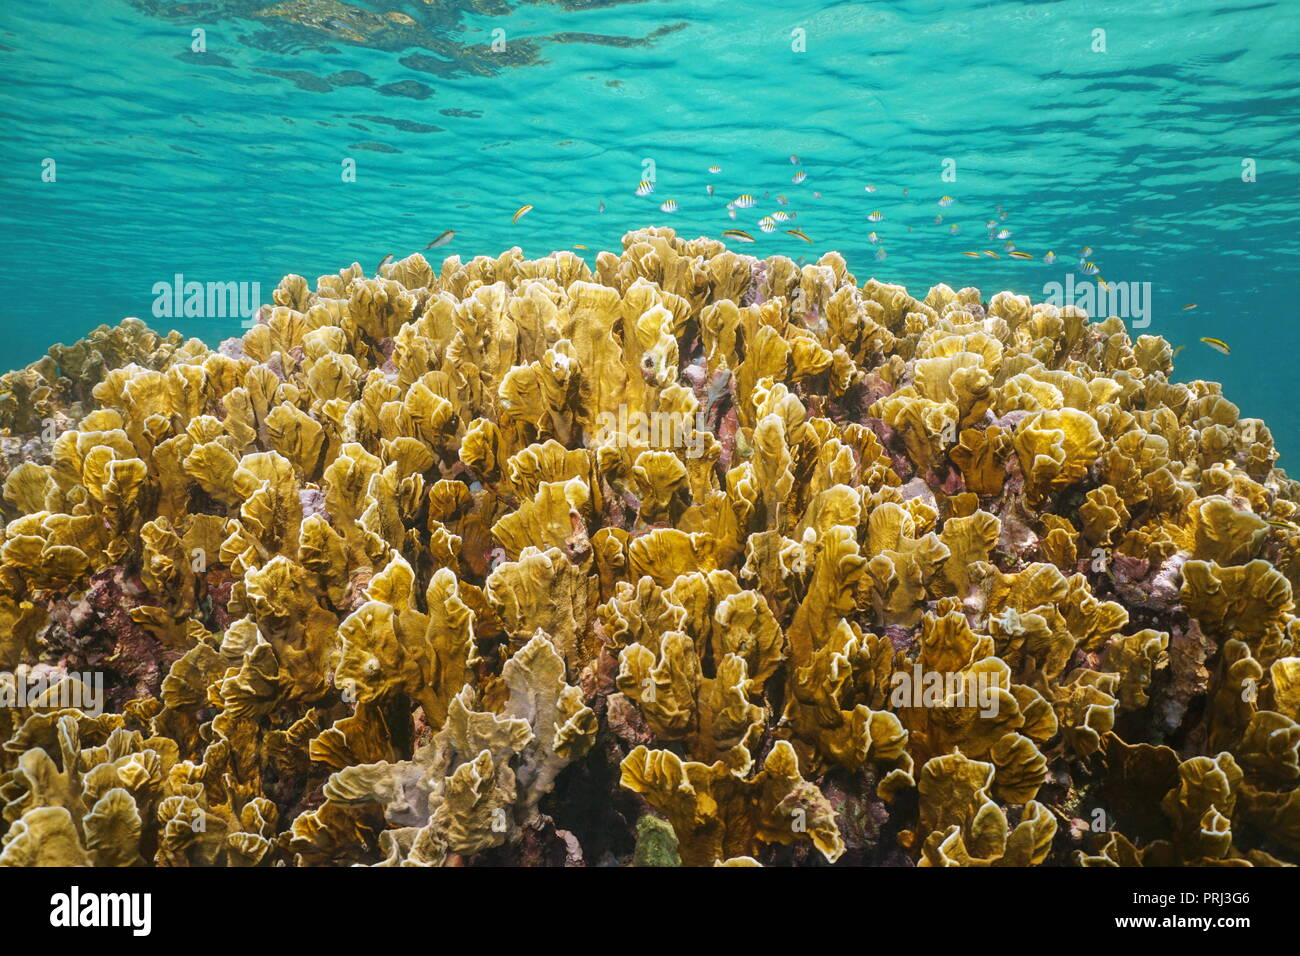 Underwater bladed fire coral, Millepora complanata, with small fish below water surface in the Caribbean sea - Stock Image